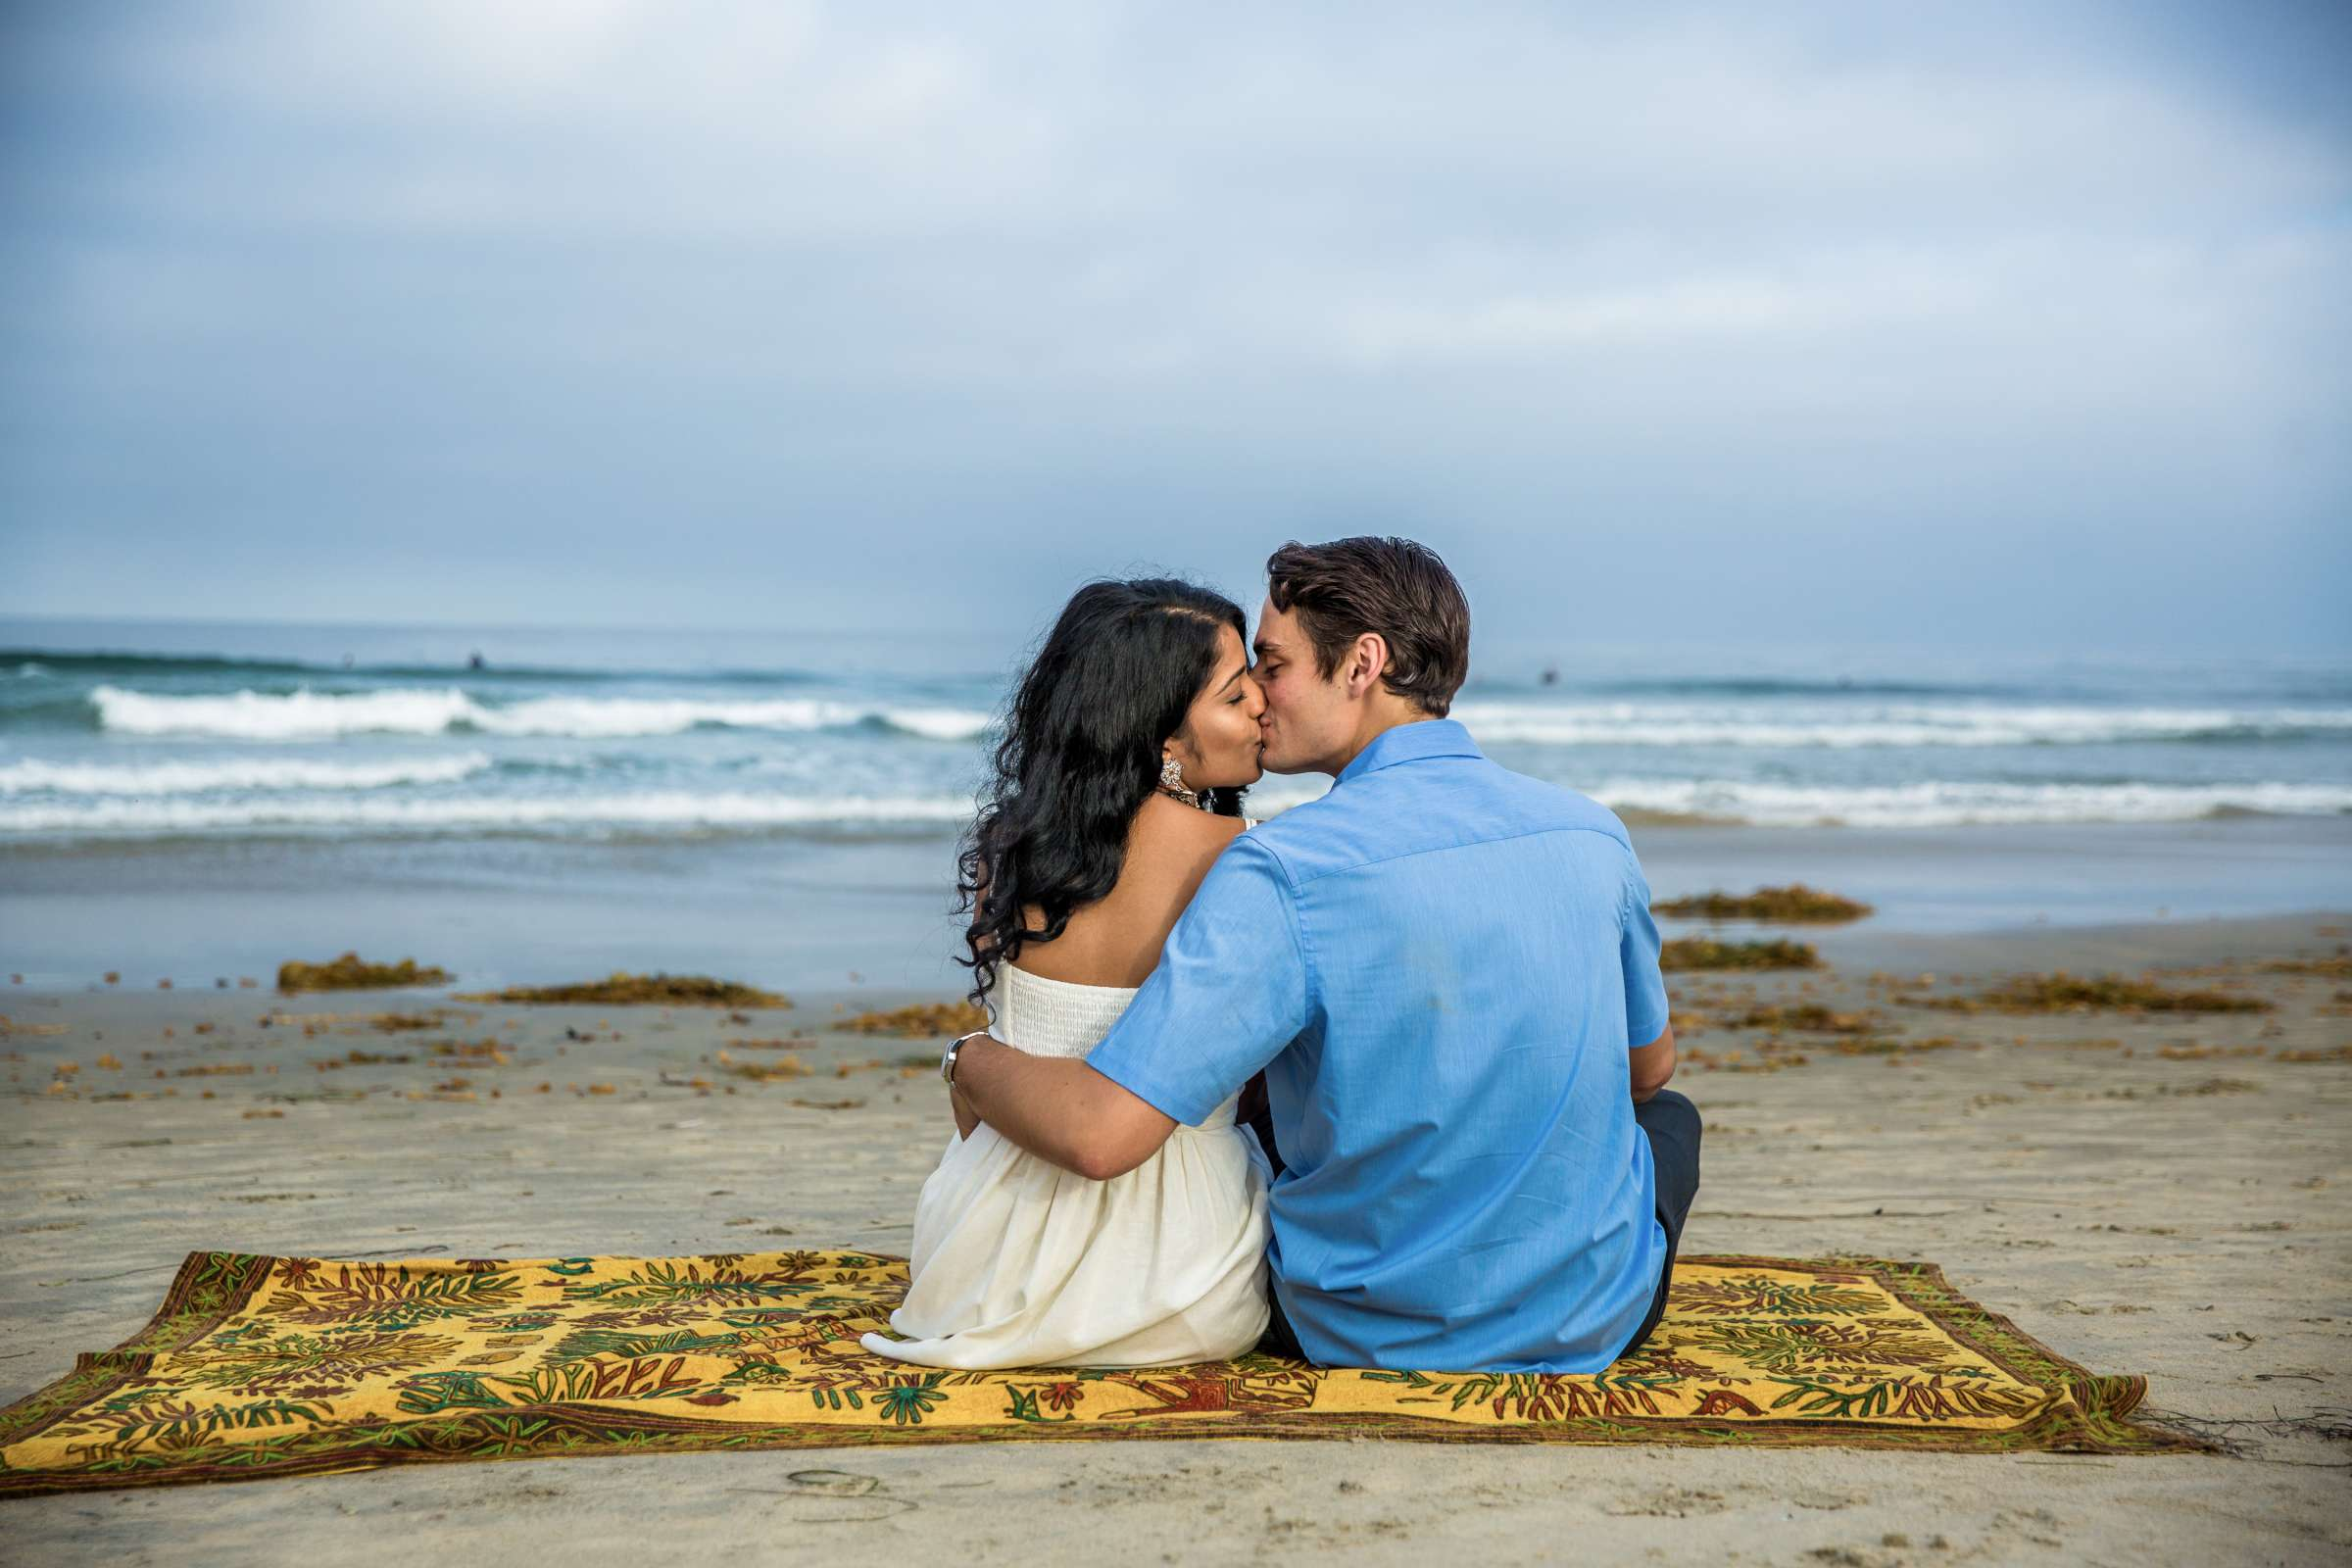 Grand Tradition Estate Engagement, Nikita and Jaycob Engagement Photo #8 by True Photography